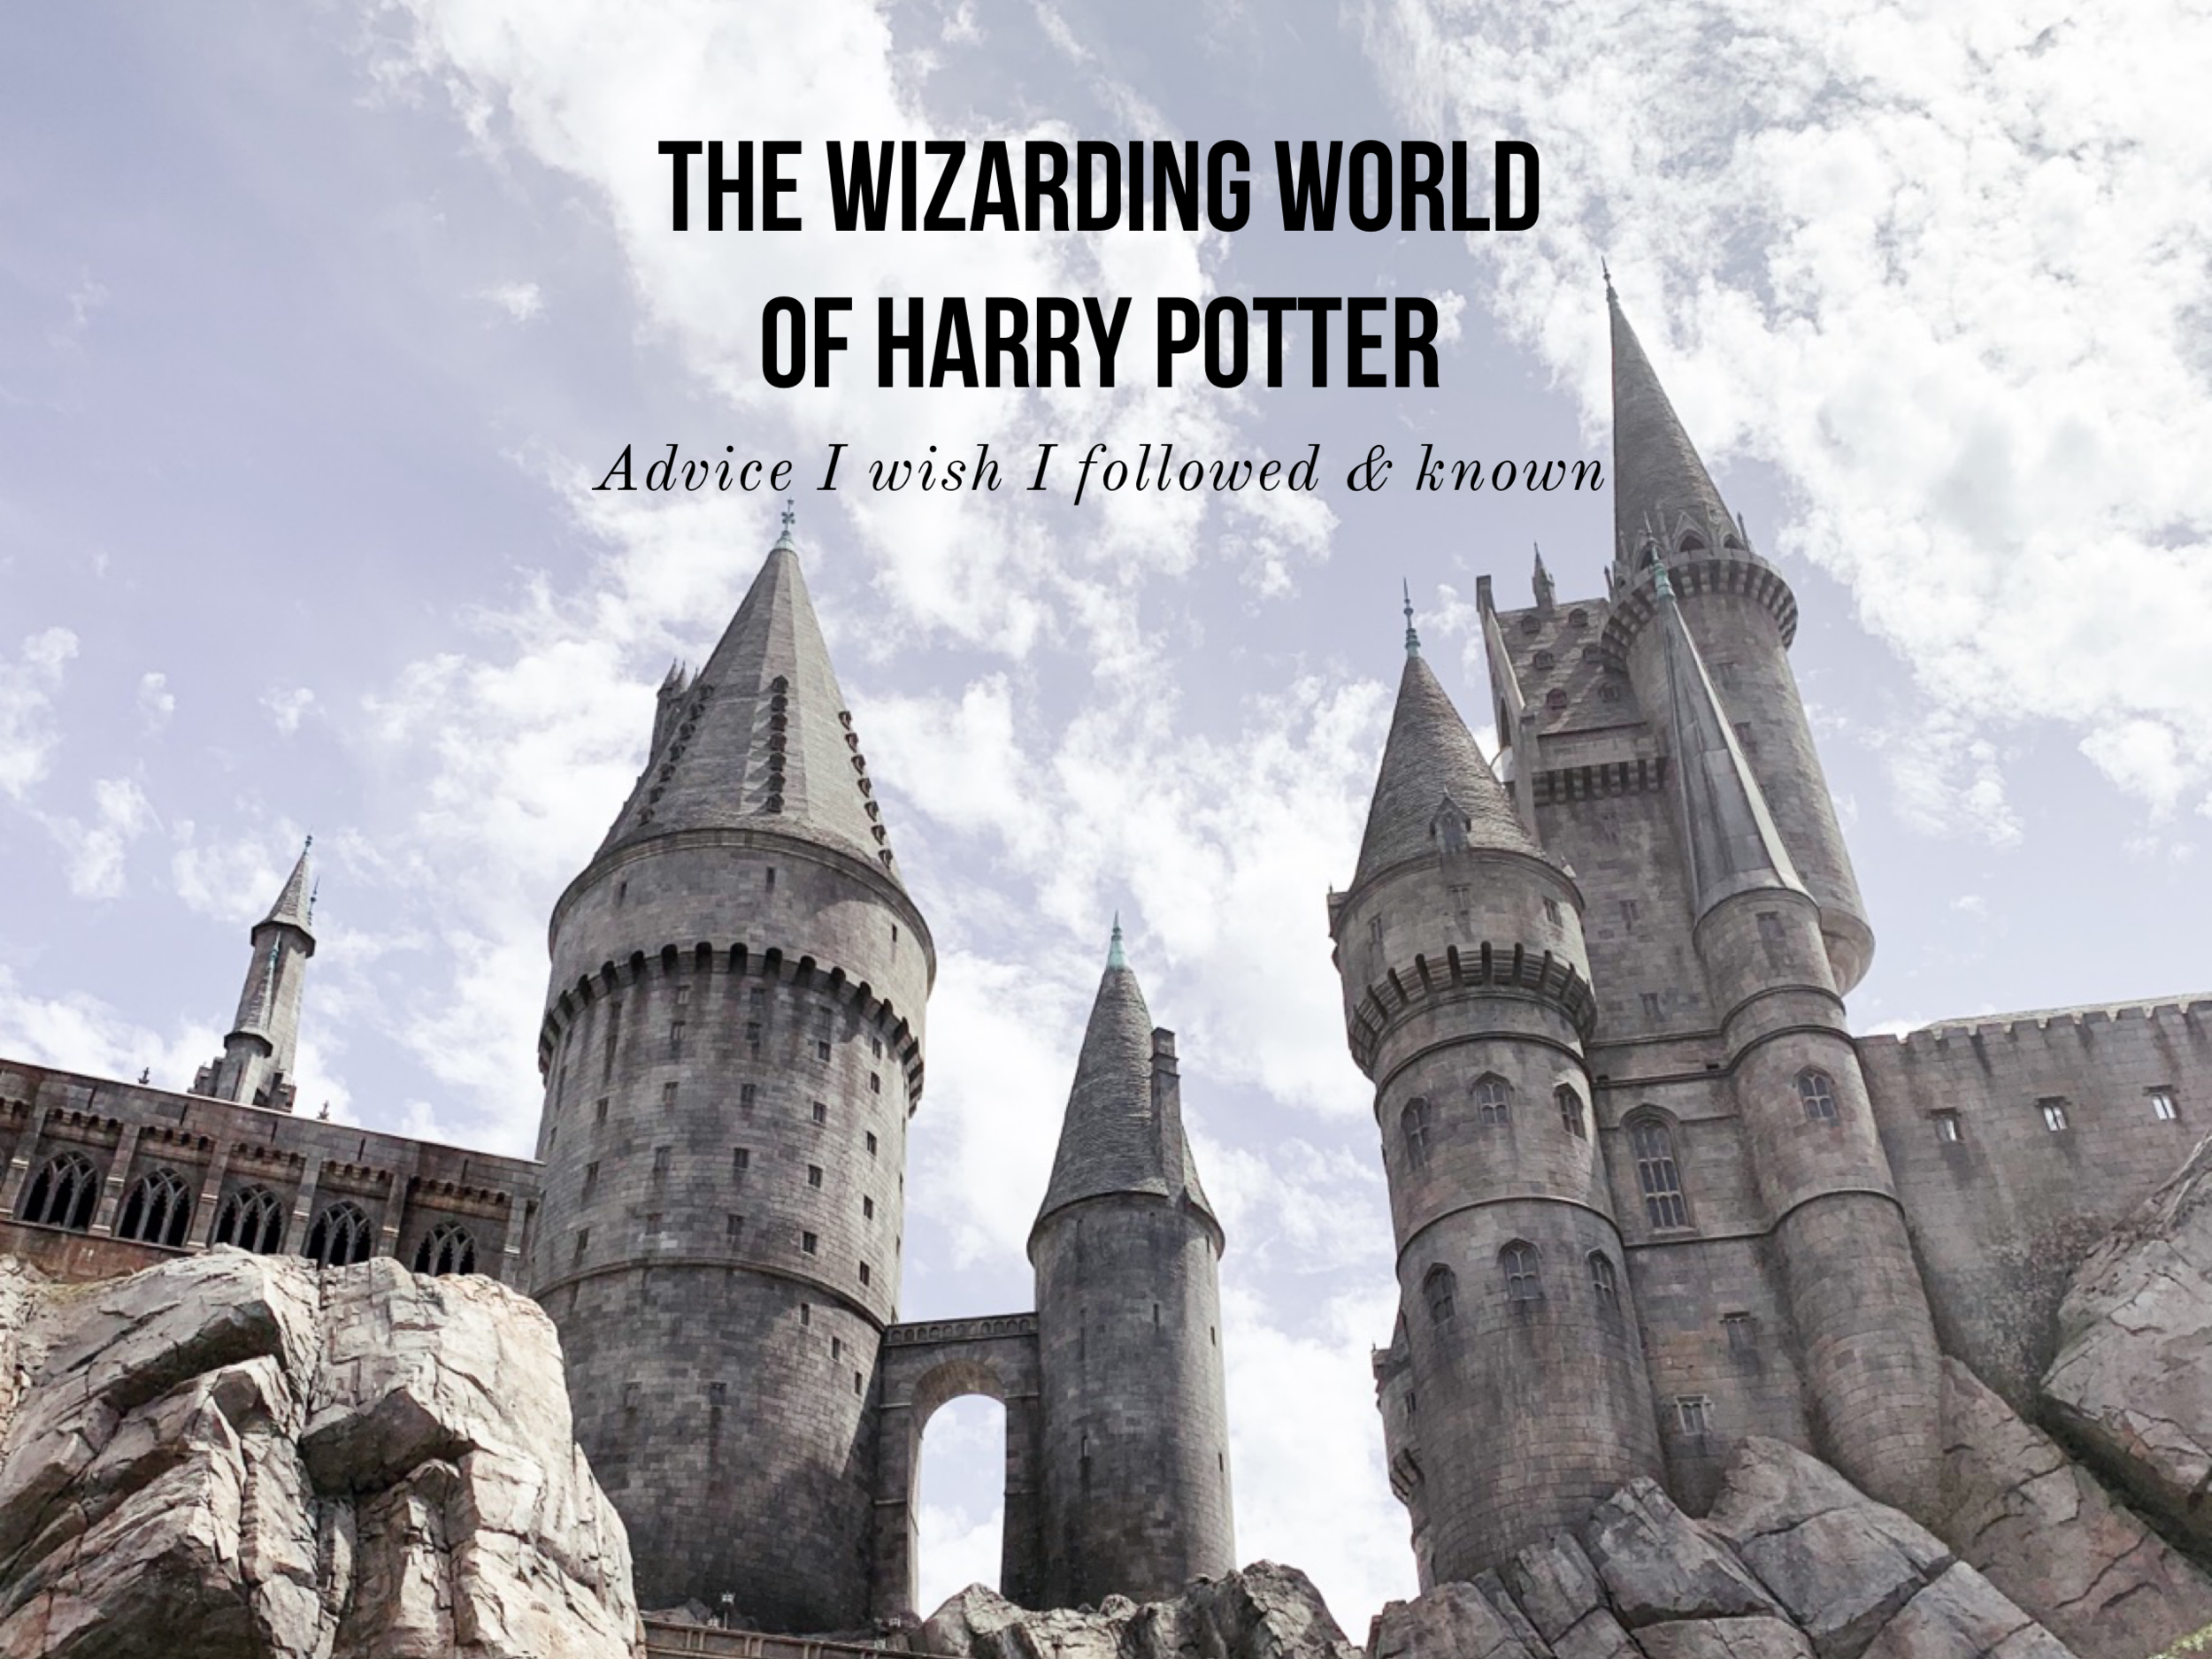 Wizarding World of Harry Potter Hollywood: Advice